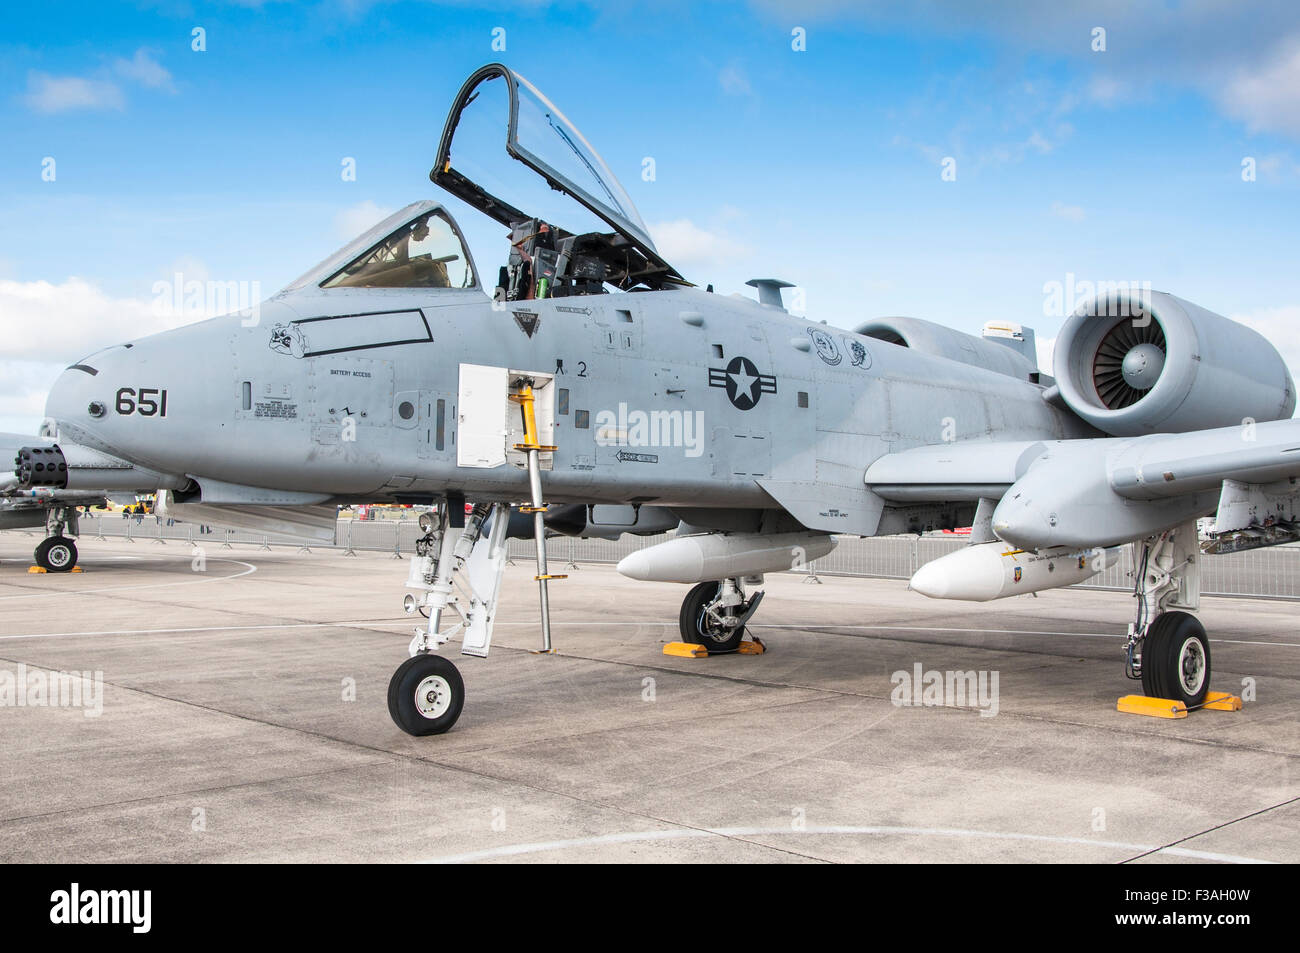 Fairchild Republic A-10 Thunderbolt II (parked) with cockpit canopy open and boarding & A 10 Thunderbolt Ii Stock Photos u0026 A 10 Thunderbolt Ii Stock ...